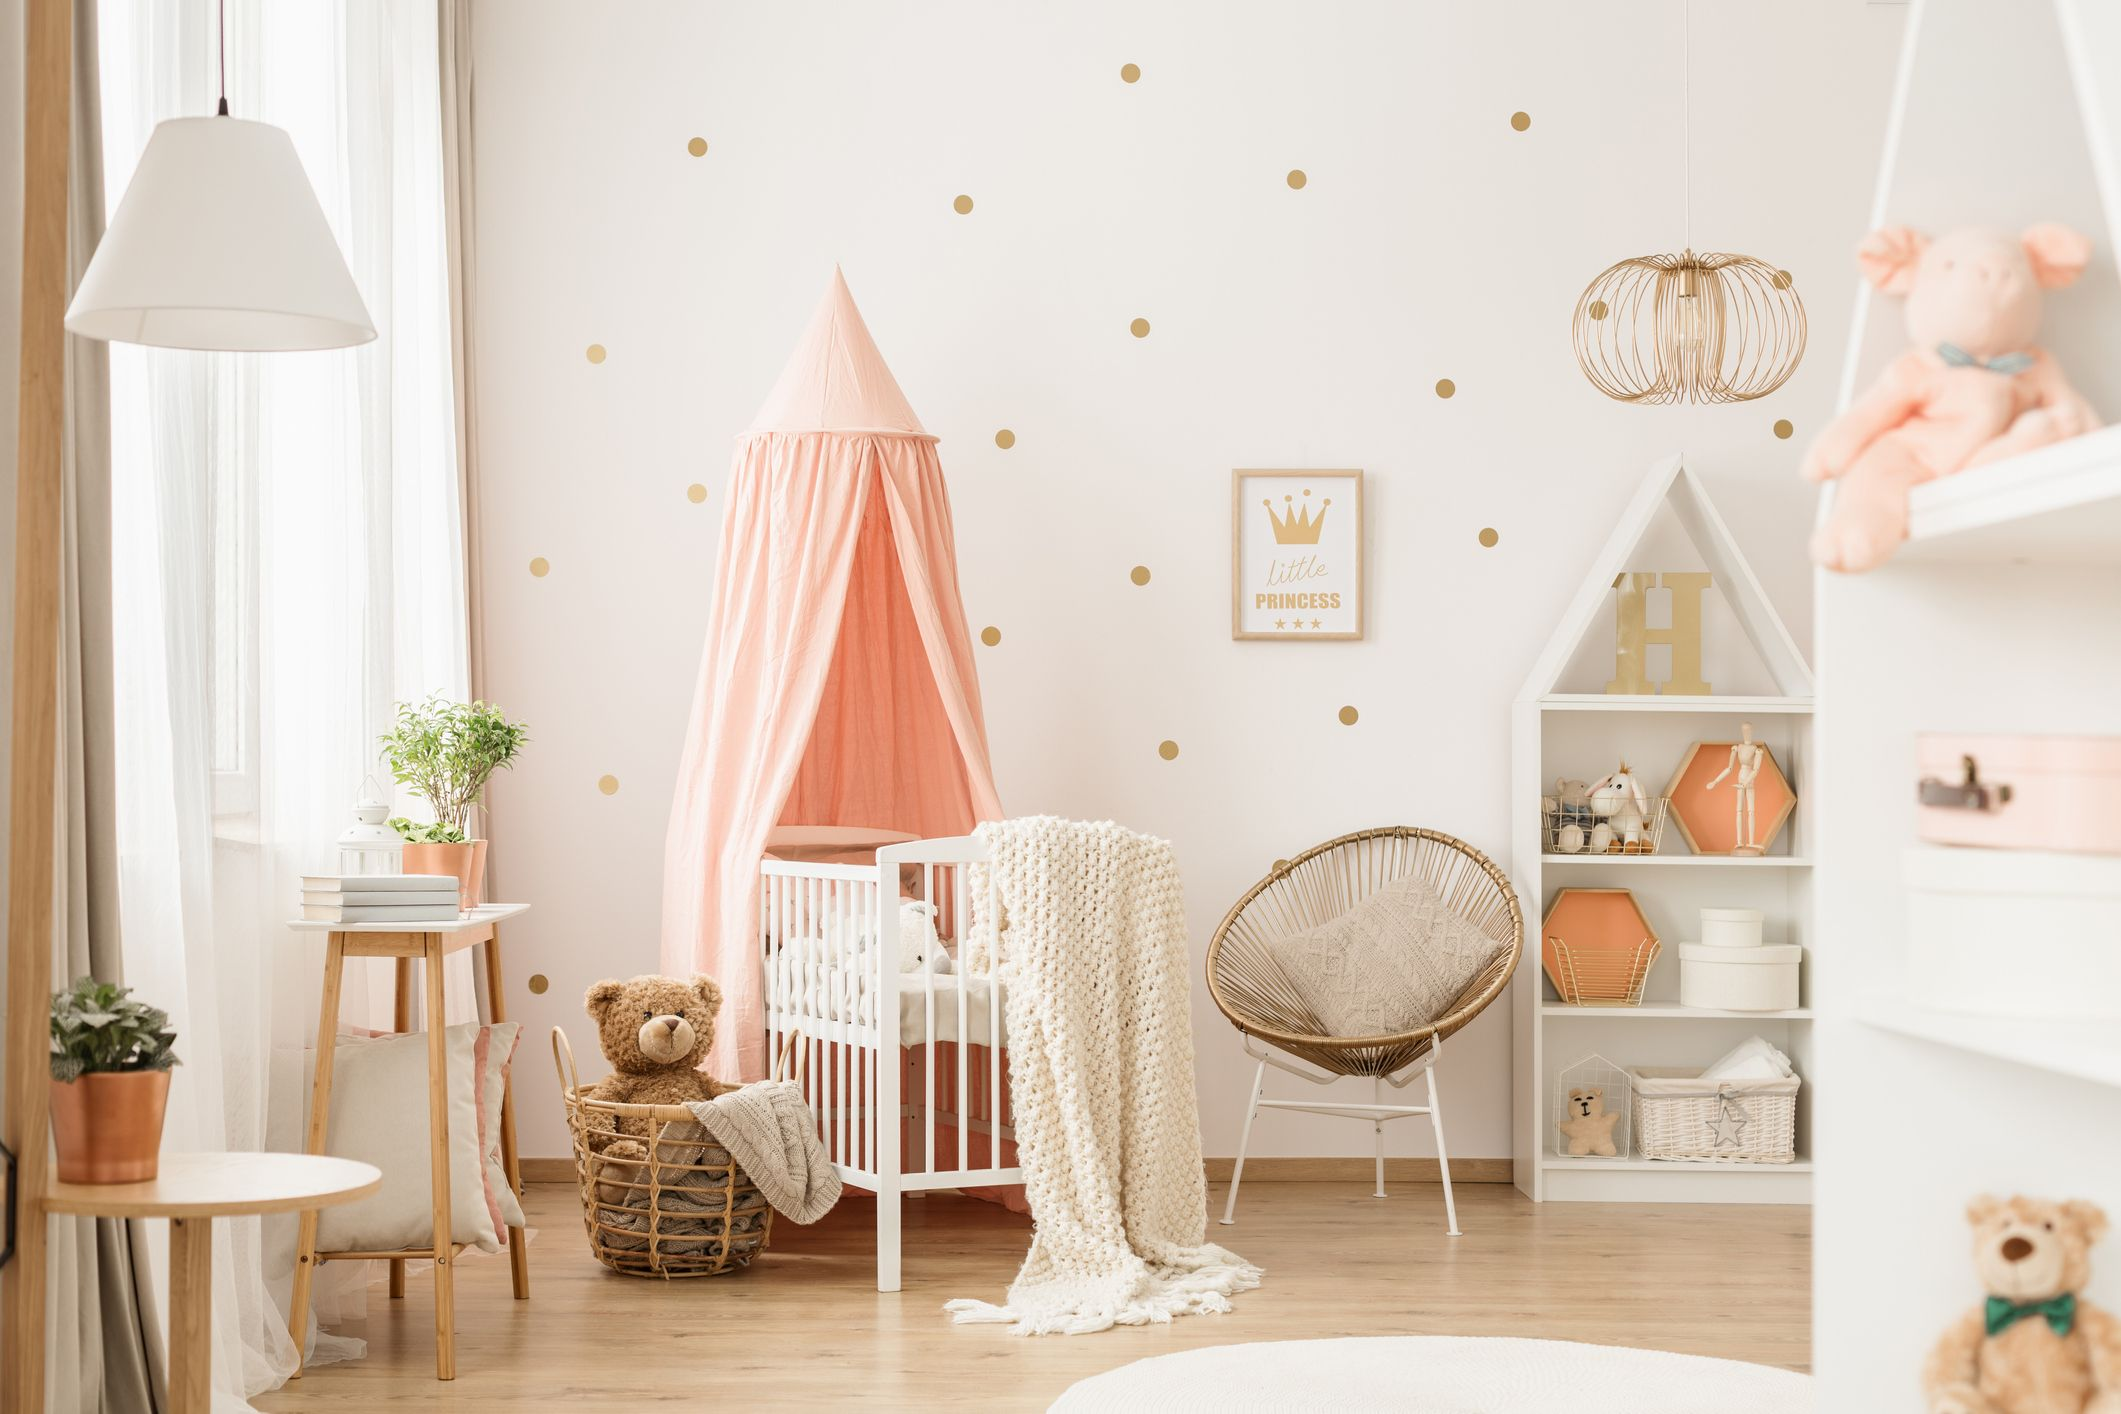 10 nesting tips to get your home ready for a baby